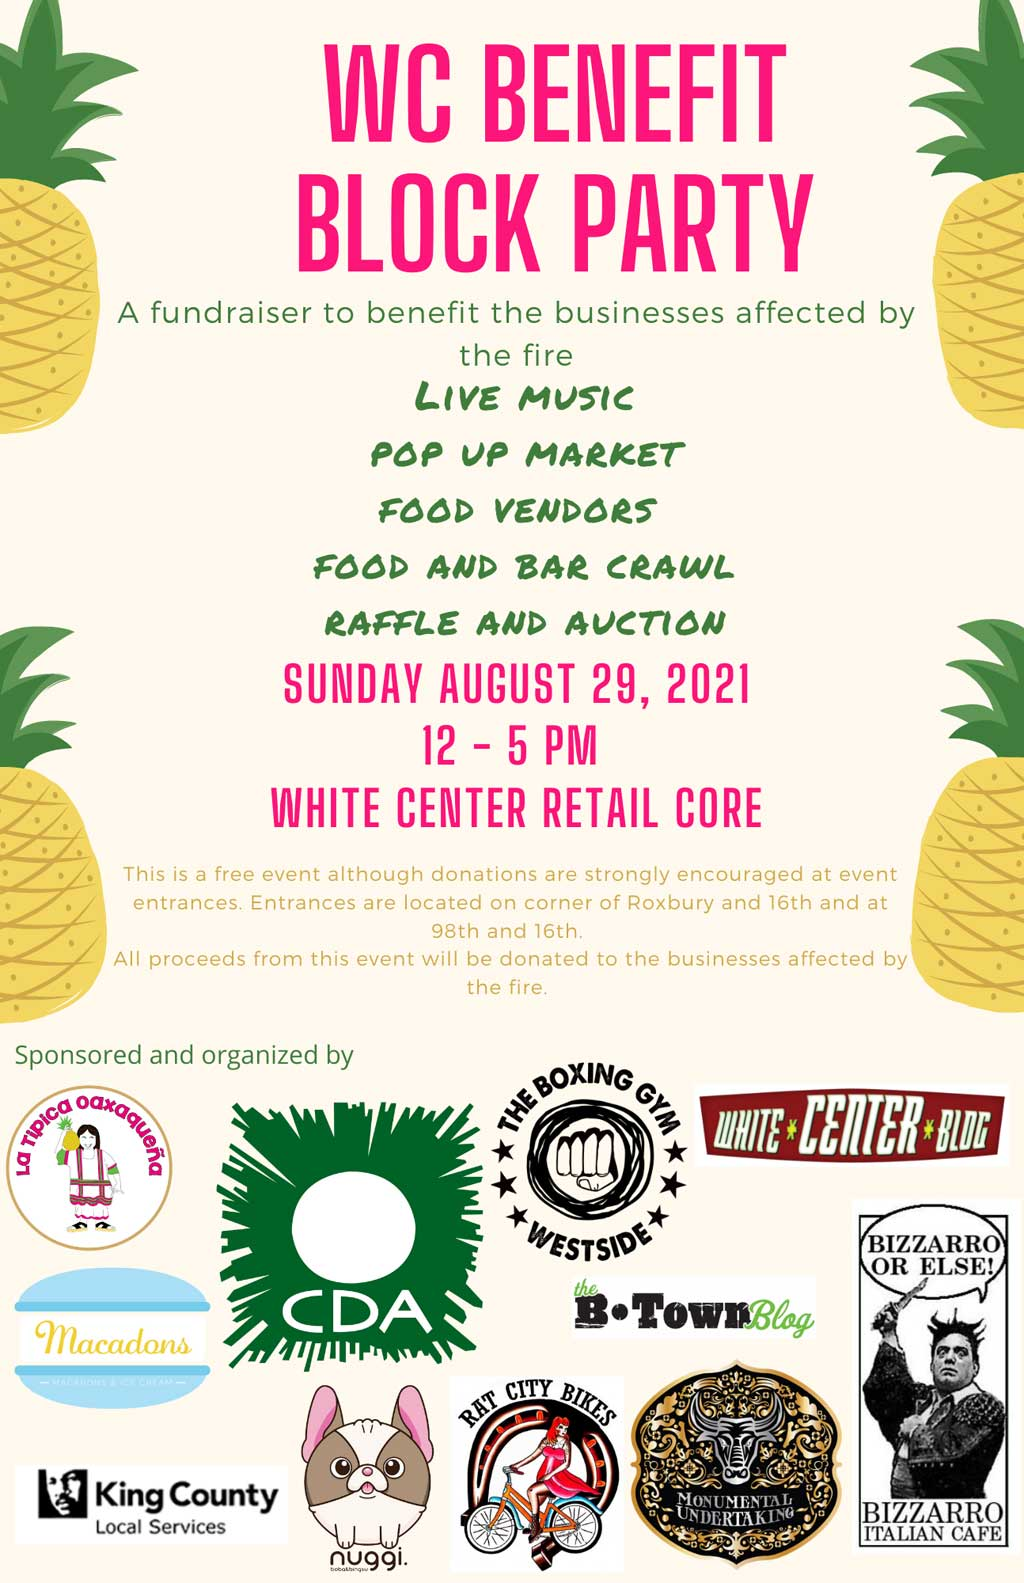 REMINDER: Block Party to benefit businesses affected by White Center fire will be this Sunday 1